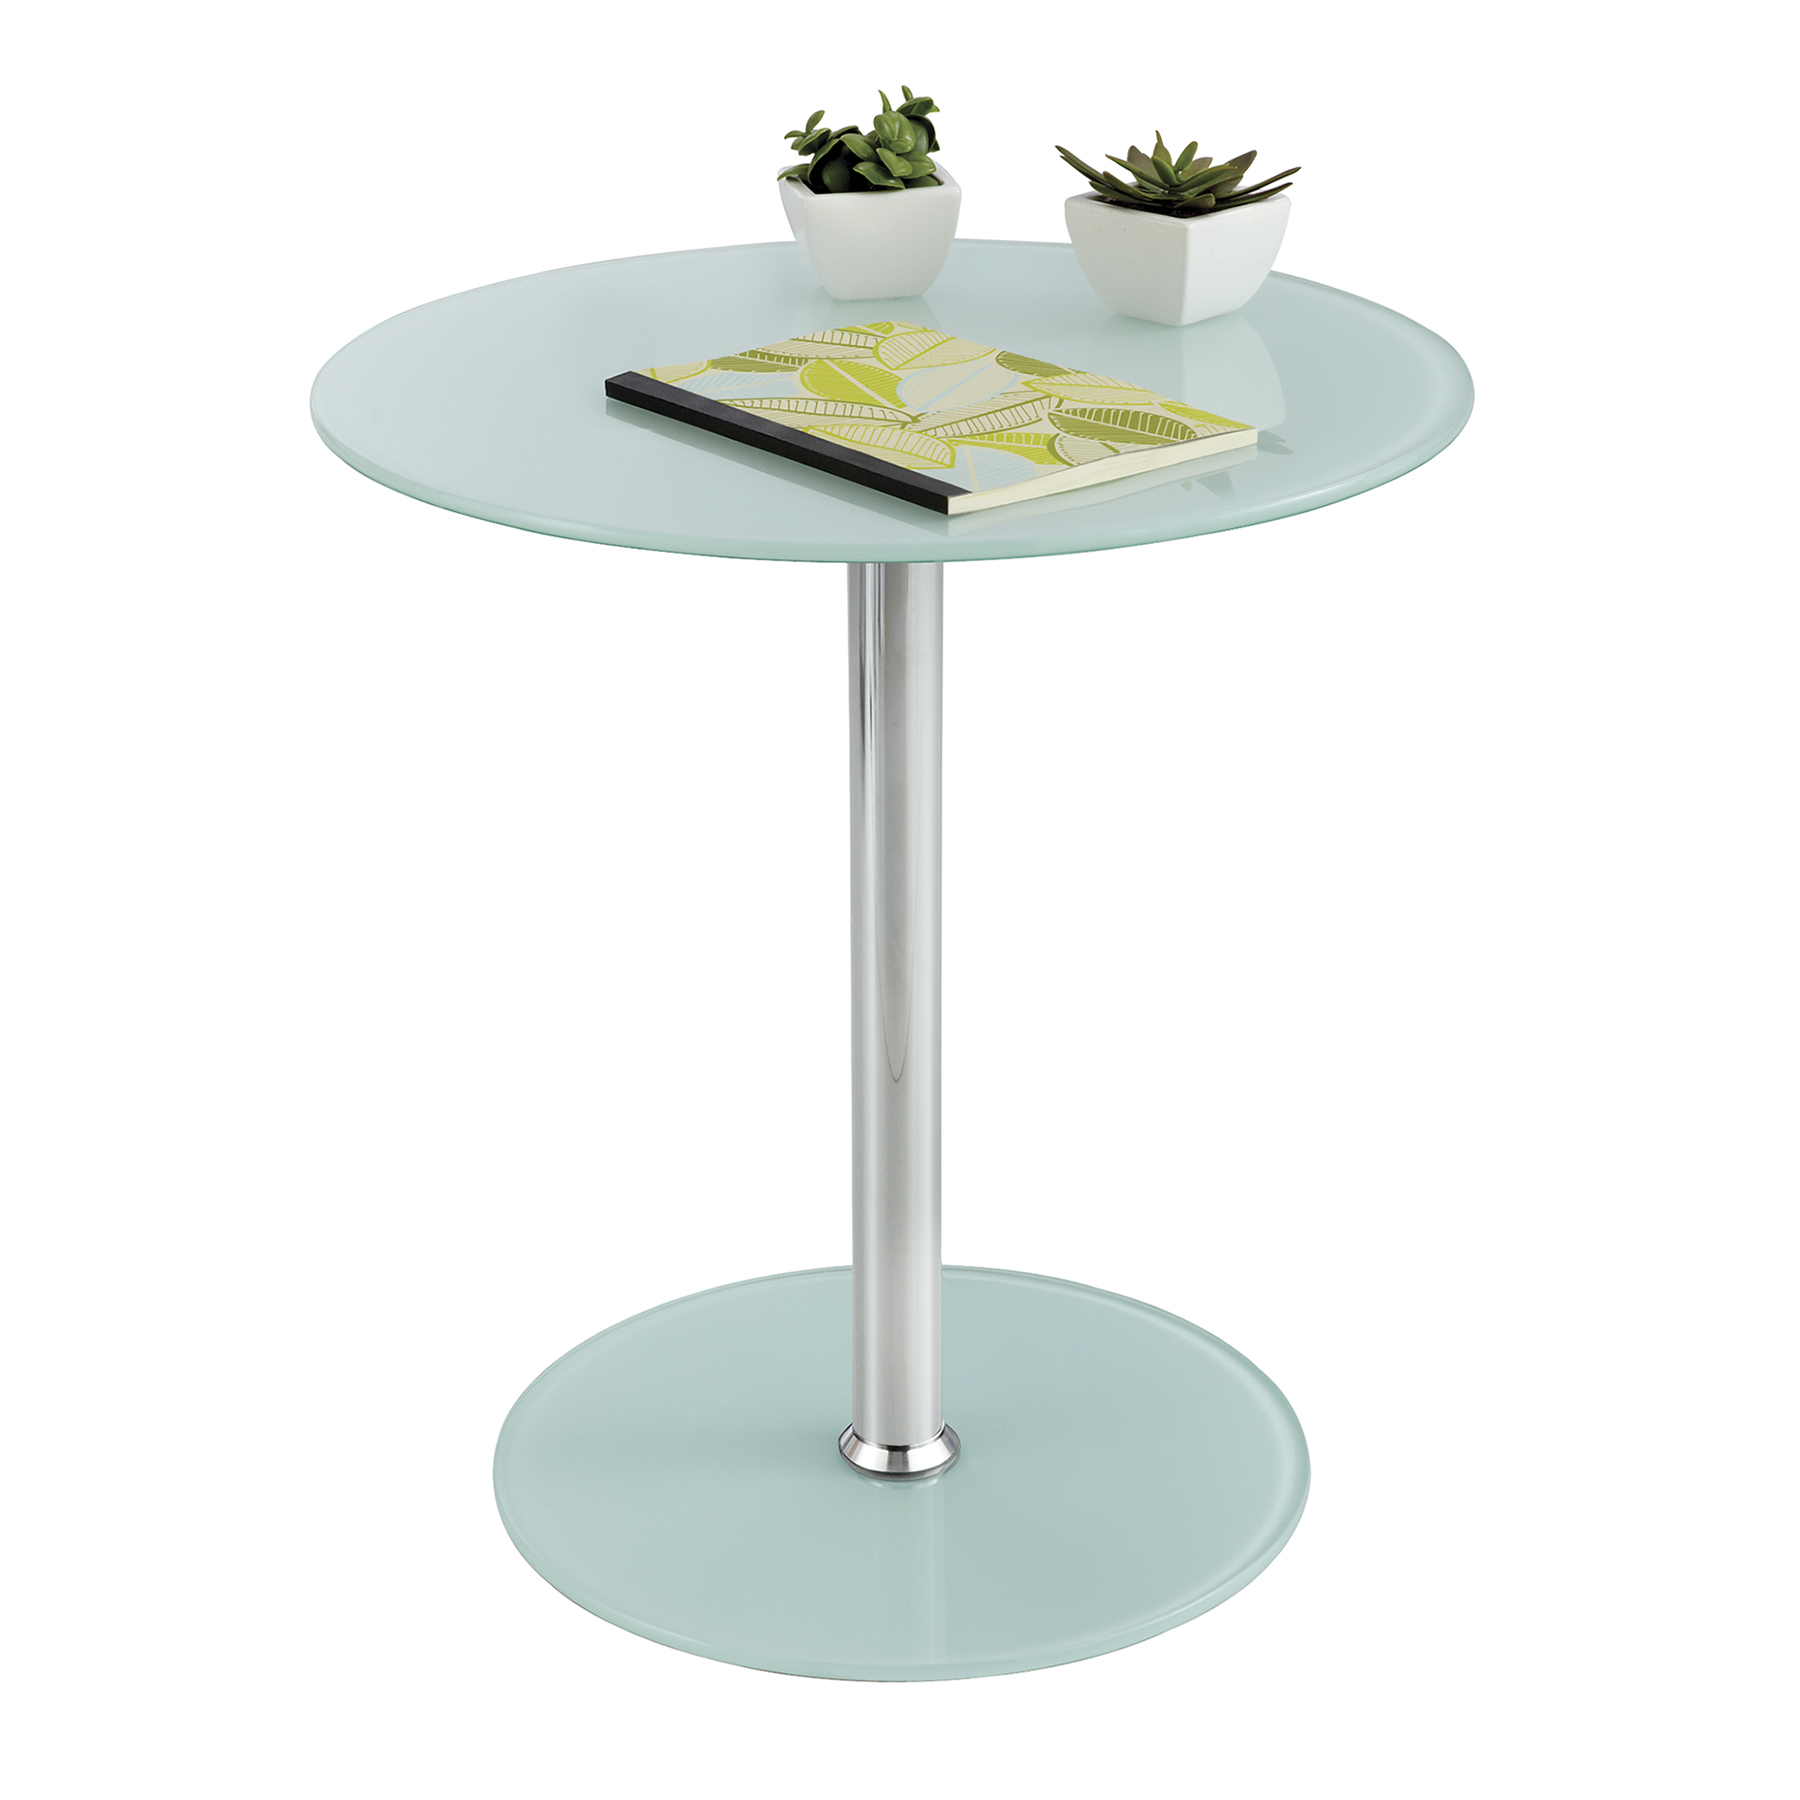 industrial accent table design ideas knurl safco products winsome with drawer and cabinet hardwood floor tile silver bedside shades light oval glass coffee black fur blanket